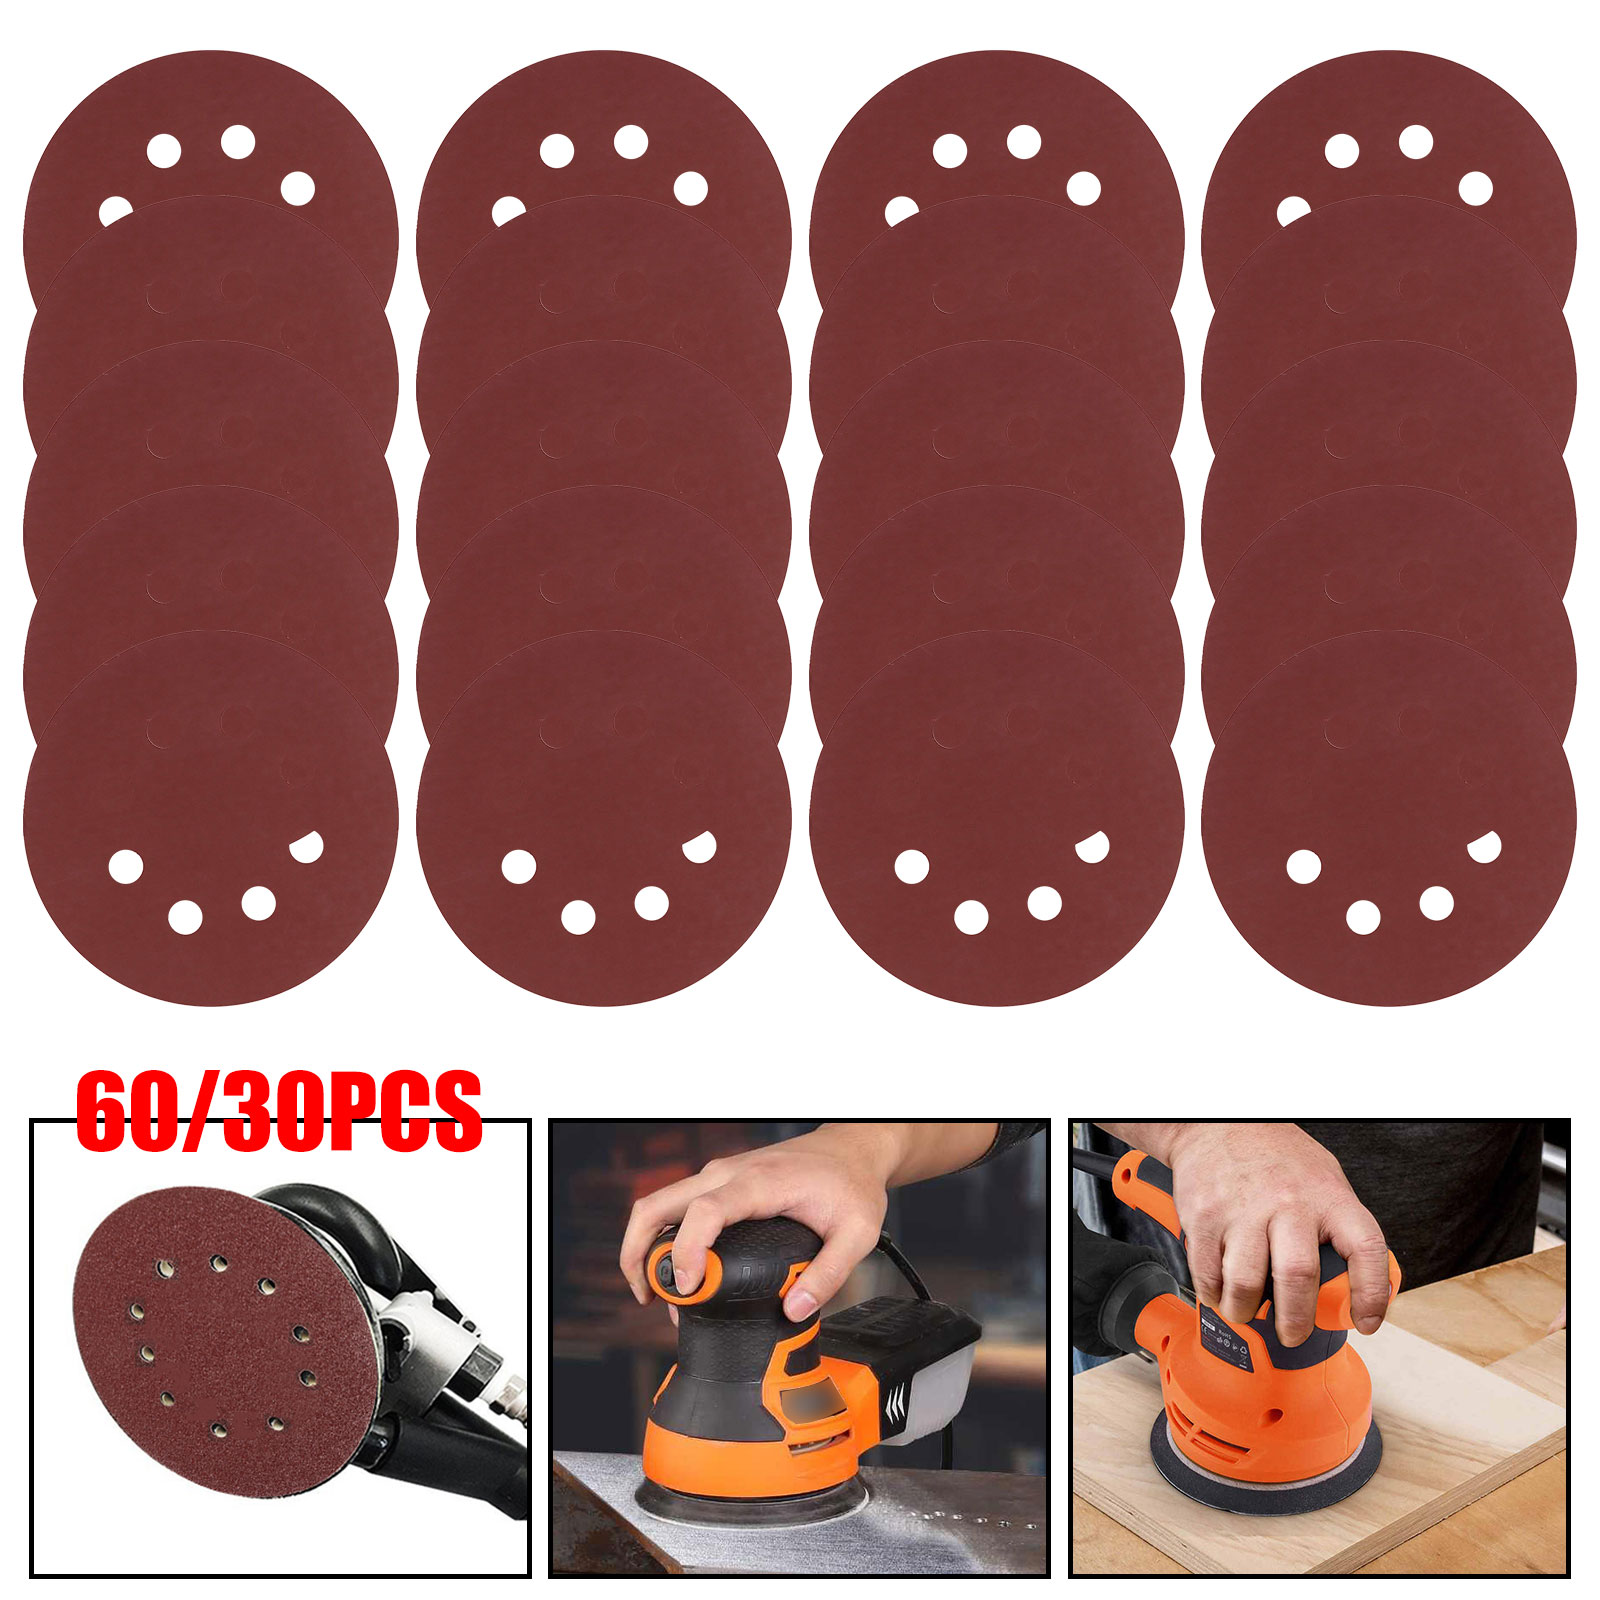 2000 grit orbital sandpaper cupfone cell phone holder